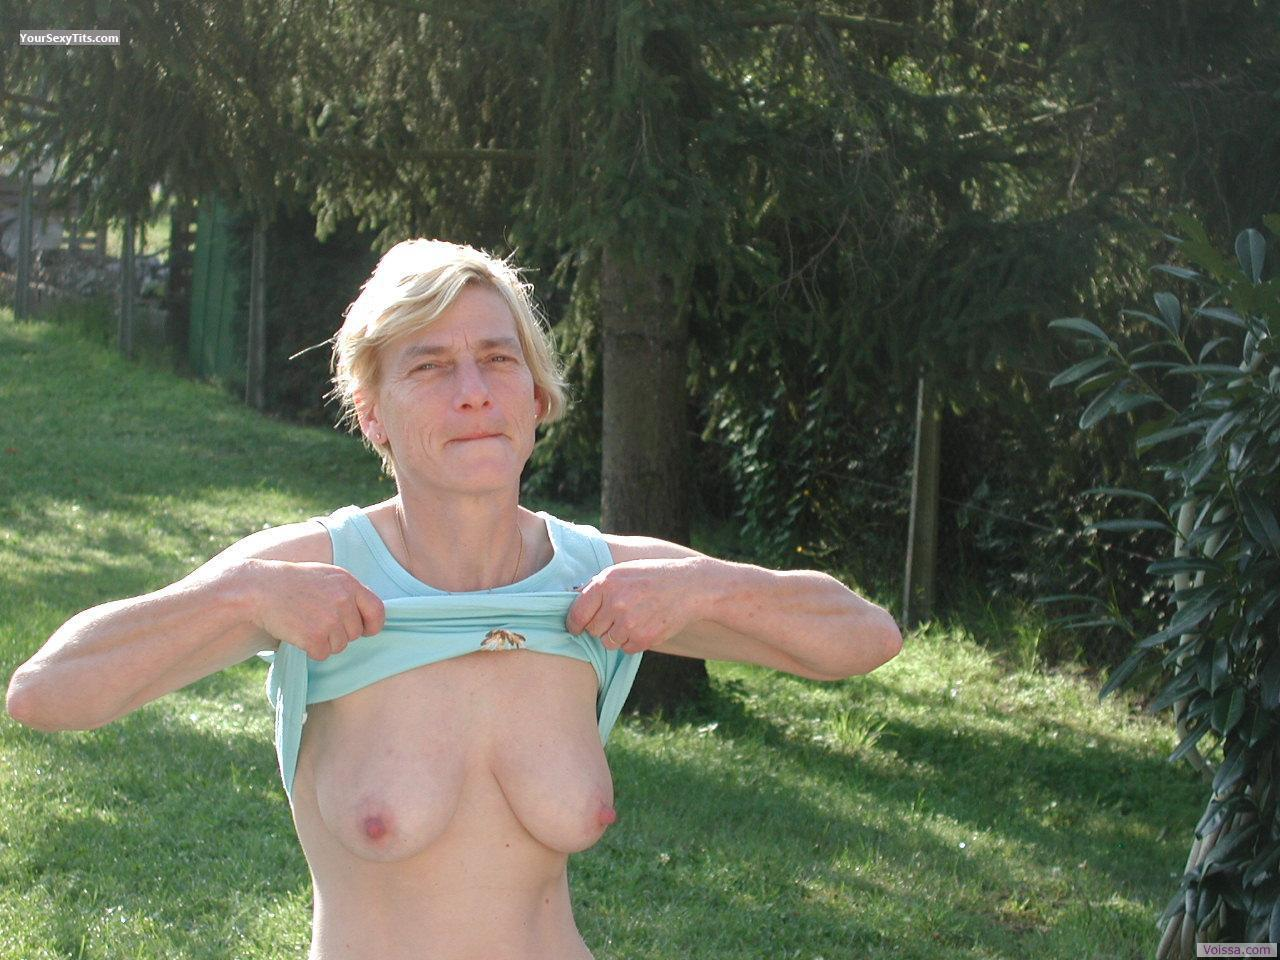 Tit Flash: My Friend's Medium Tits - Muriel from France